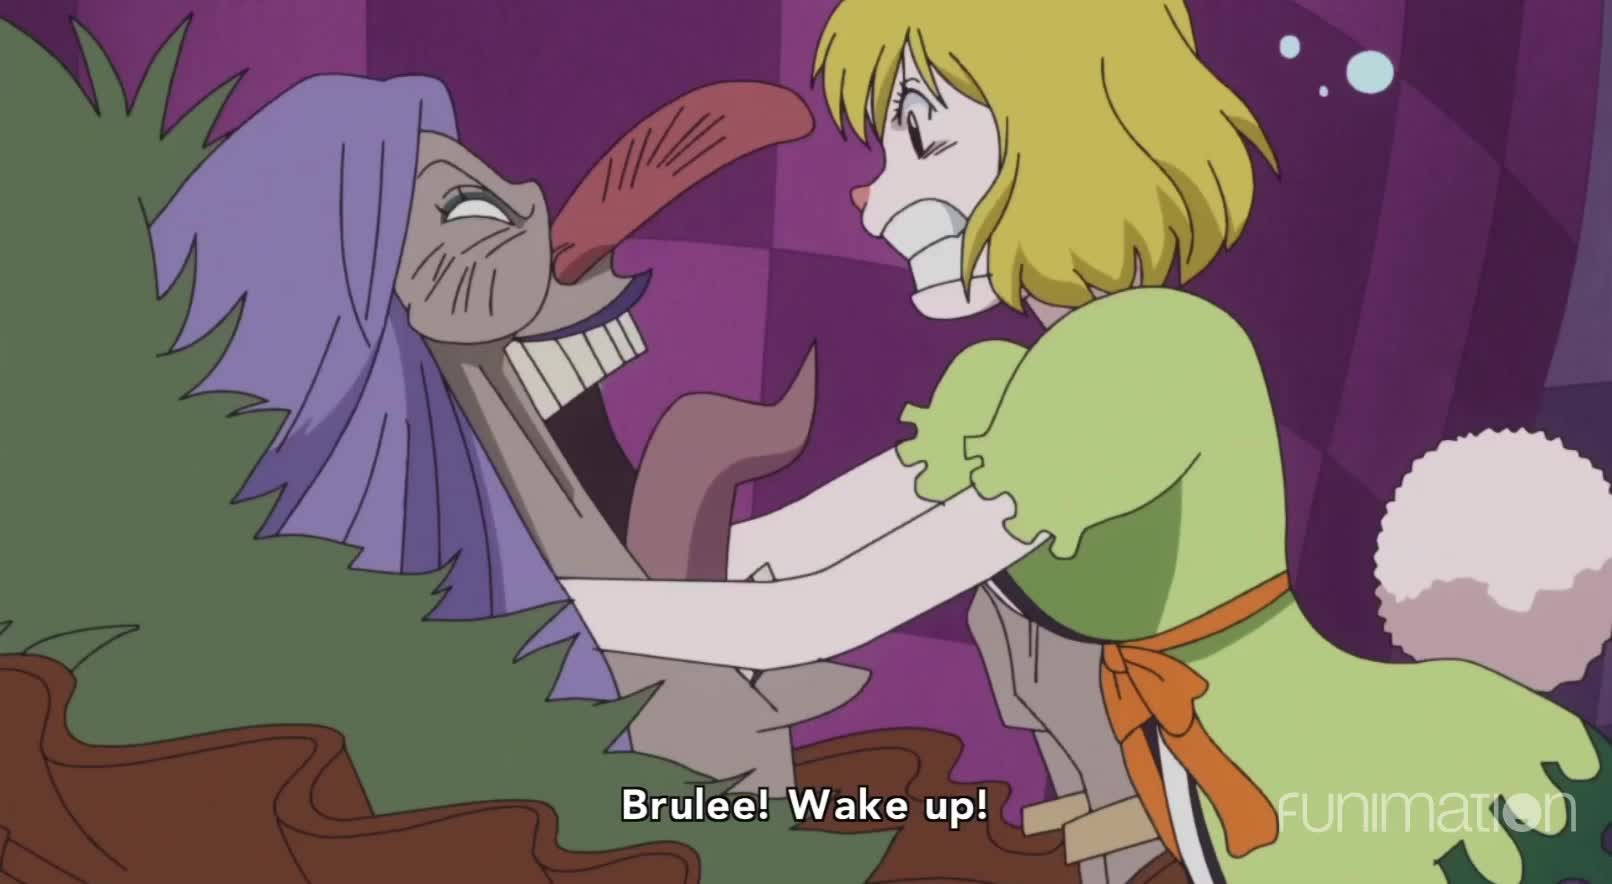 anime, coffee, ep816, funimation, funny, one piece, one piece episode 816, onepiece, sleepy, tired, wake, wake up, Wake up Brulee! GIFs